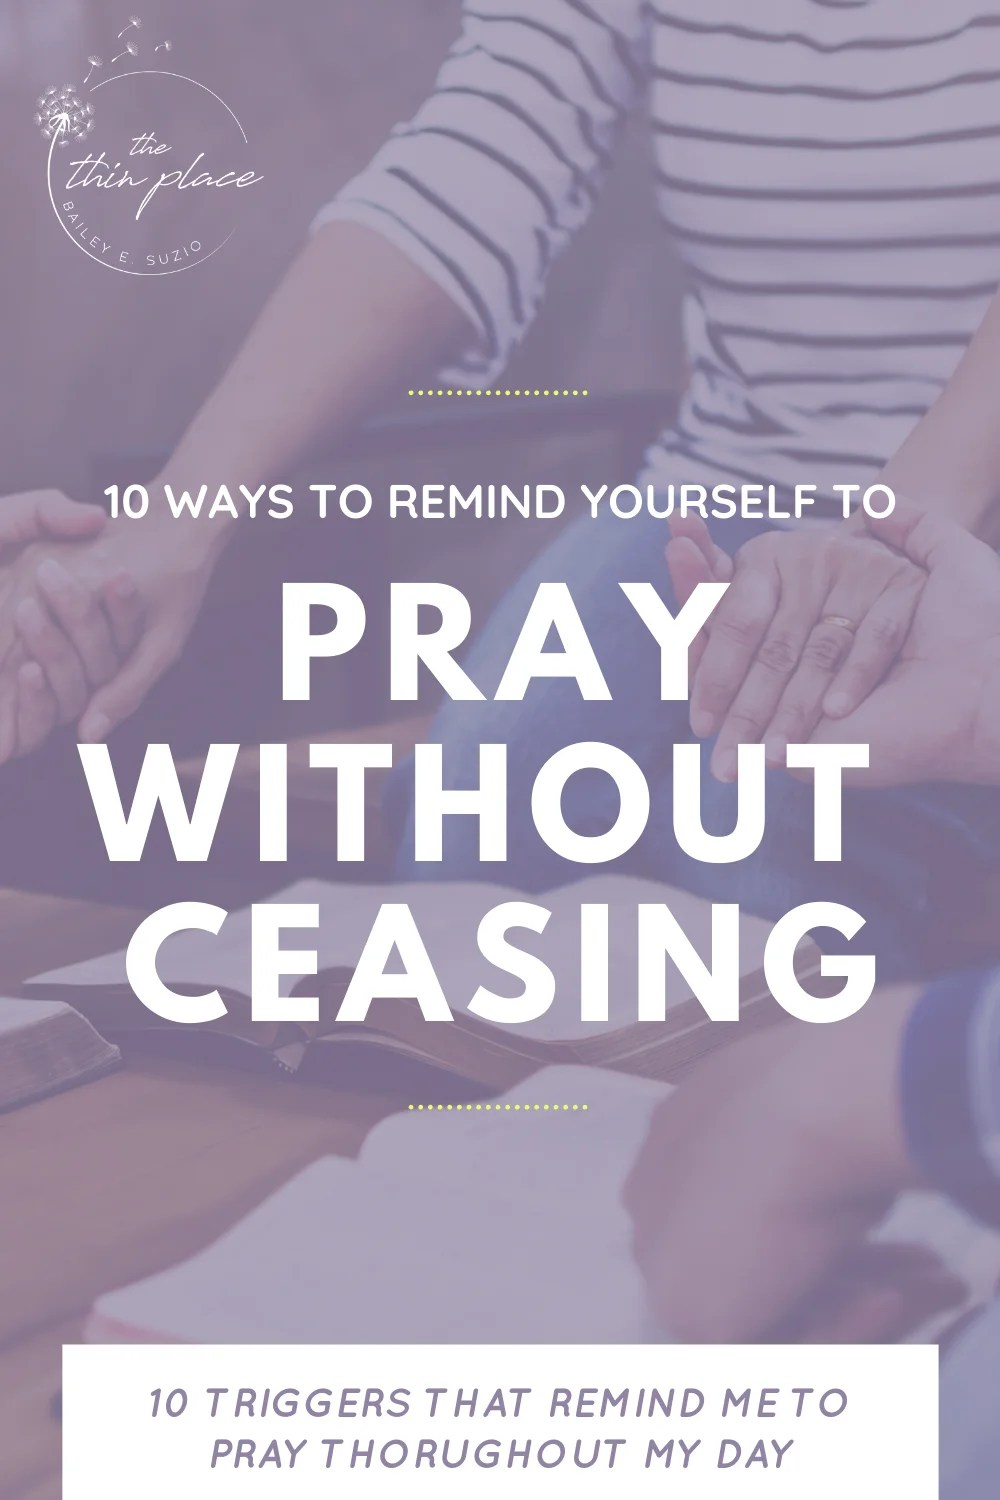 Write down some of the most repetitive tasks in your day and think about the reminders you can set-up for yourself. Here are 10 triggers to encourage you to pray without ceasing today #pray #prayers #praying #faith #devotional #christianprayer